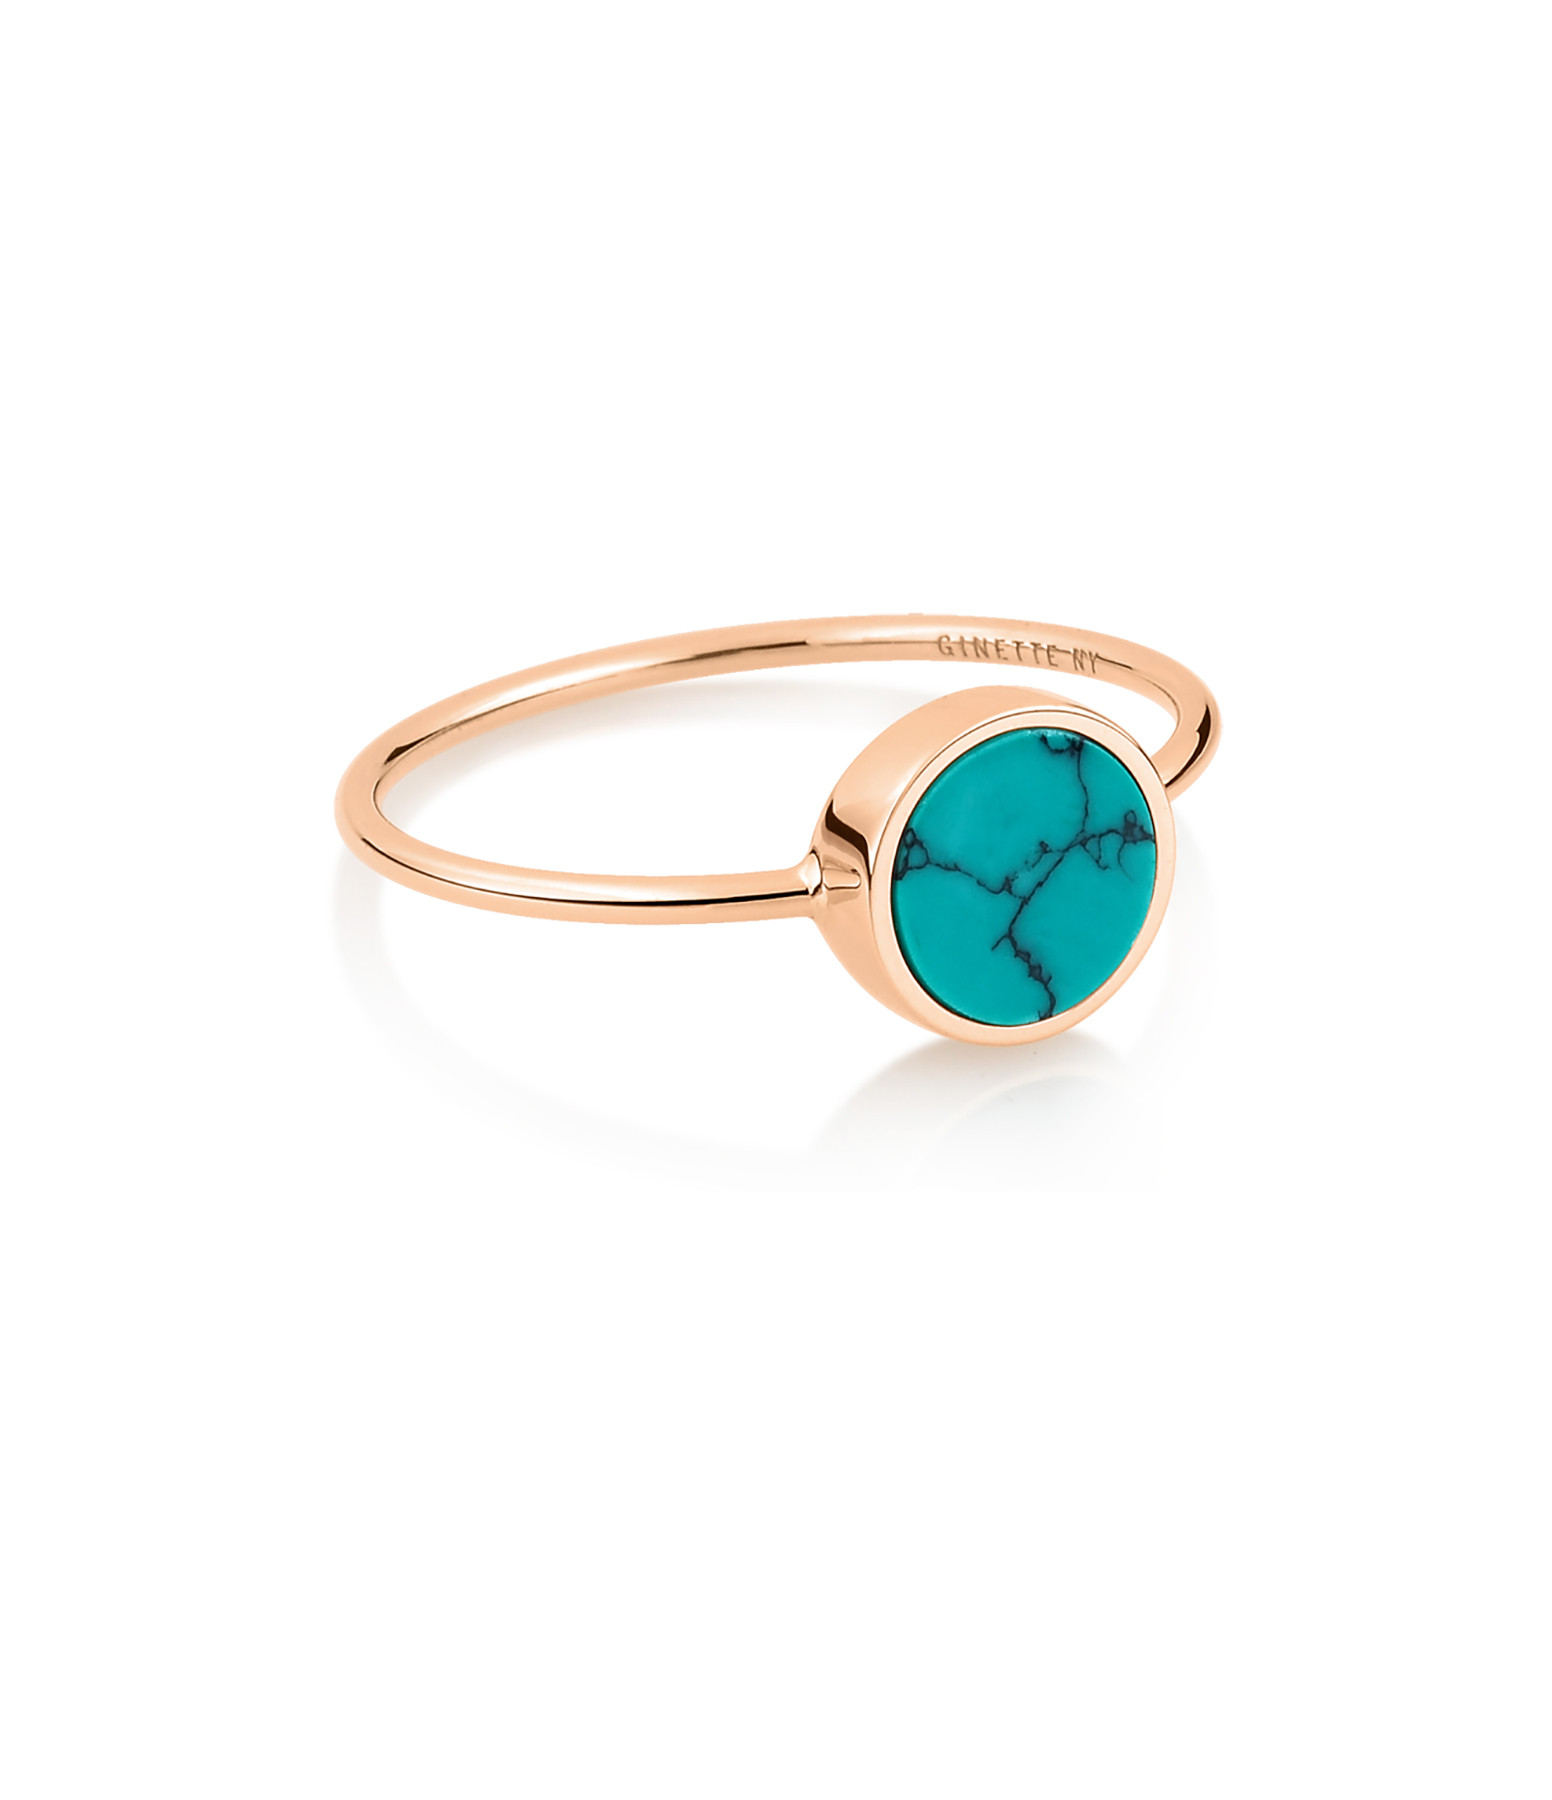 GINETTE NY - Bague Ever Mini Disc Or Rose Turquoise